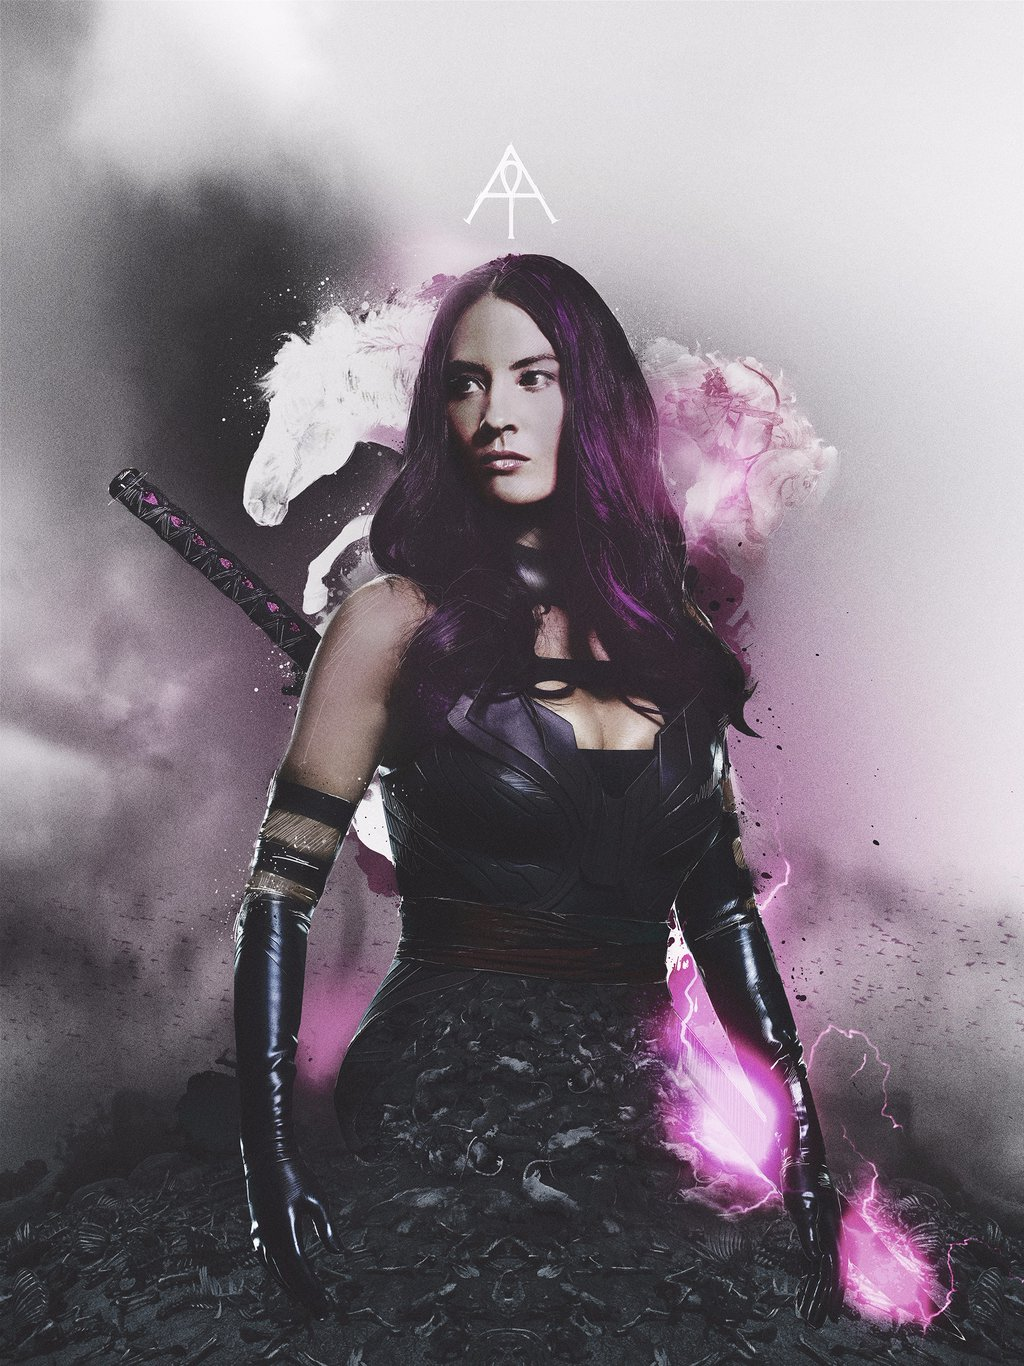 http://screenrant.com/wp-content/uploads/x-men-apocalypse-poster-psylocke.jpeg